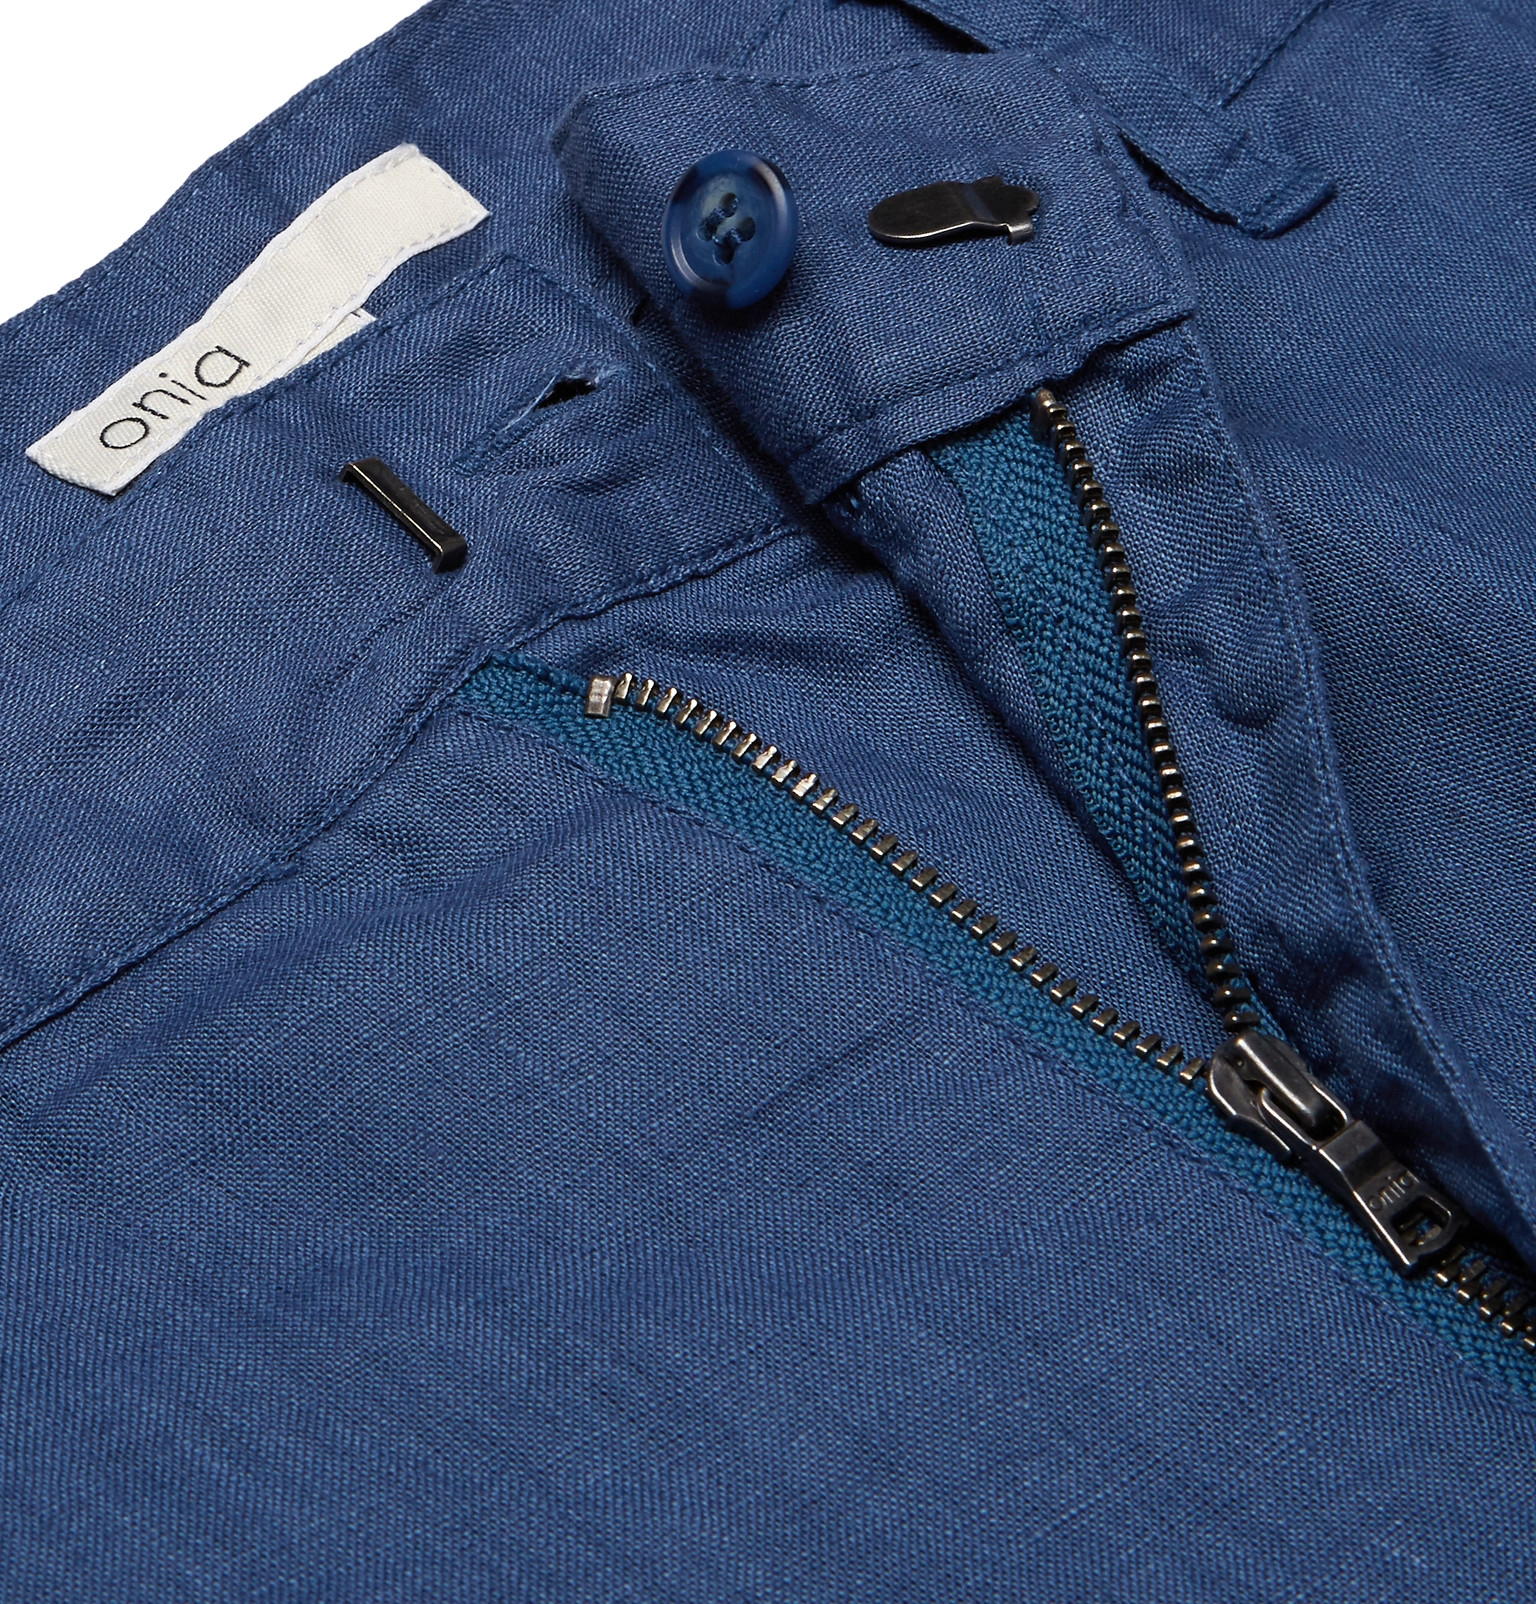 Onia Abe Linen Trousers in Indigo (Blue) for Men